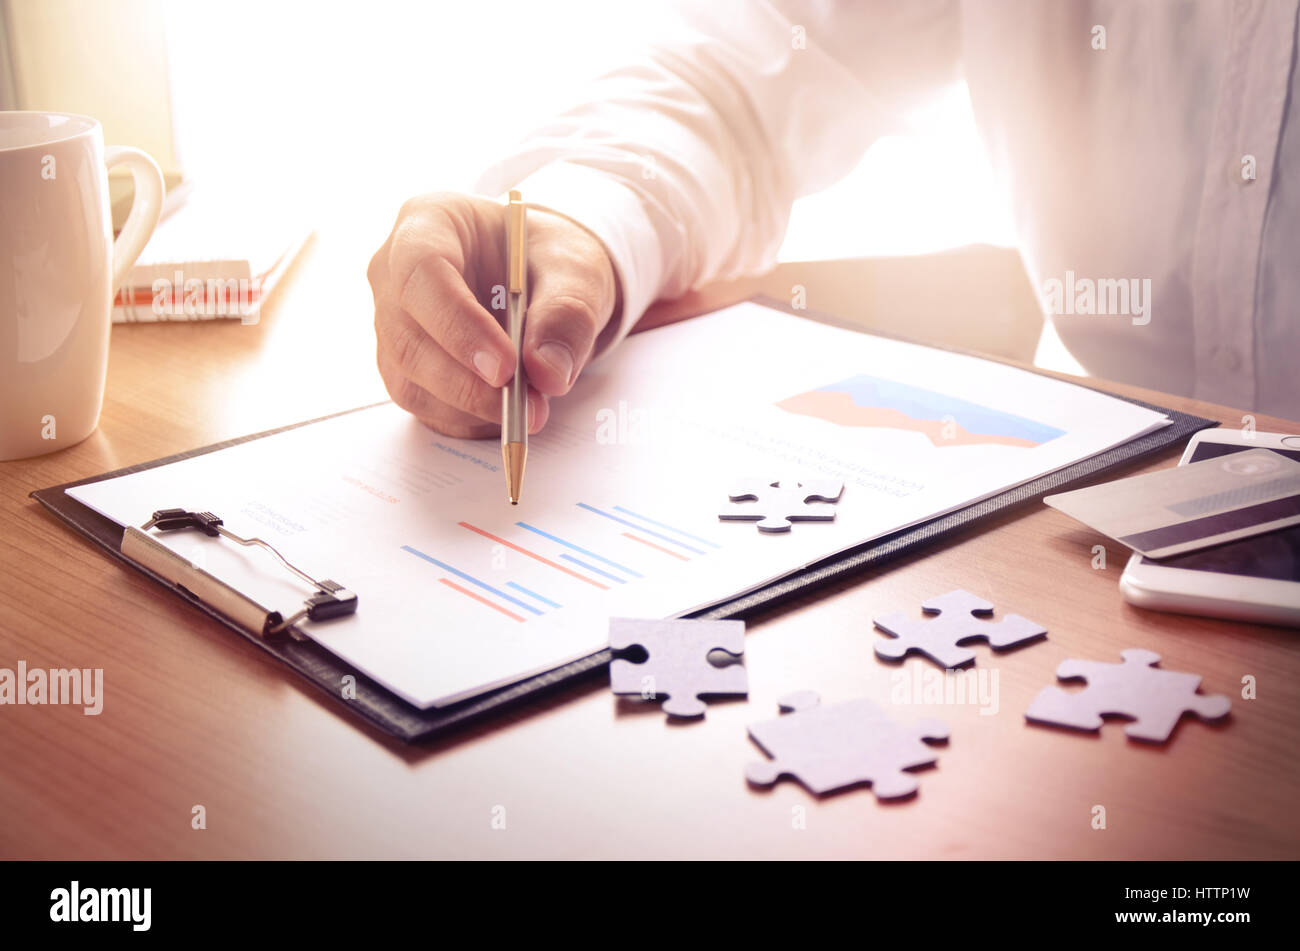 Businessman work with financial report at wooden office desk with puzzle pieces, smartphone, credit card and coffee - Stock Image